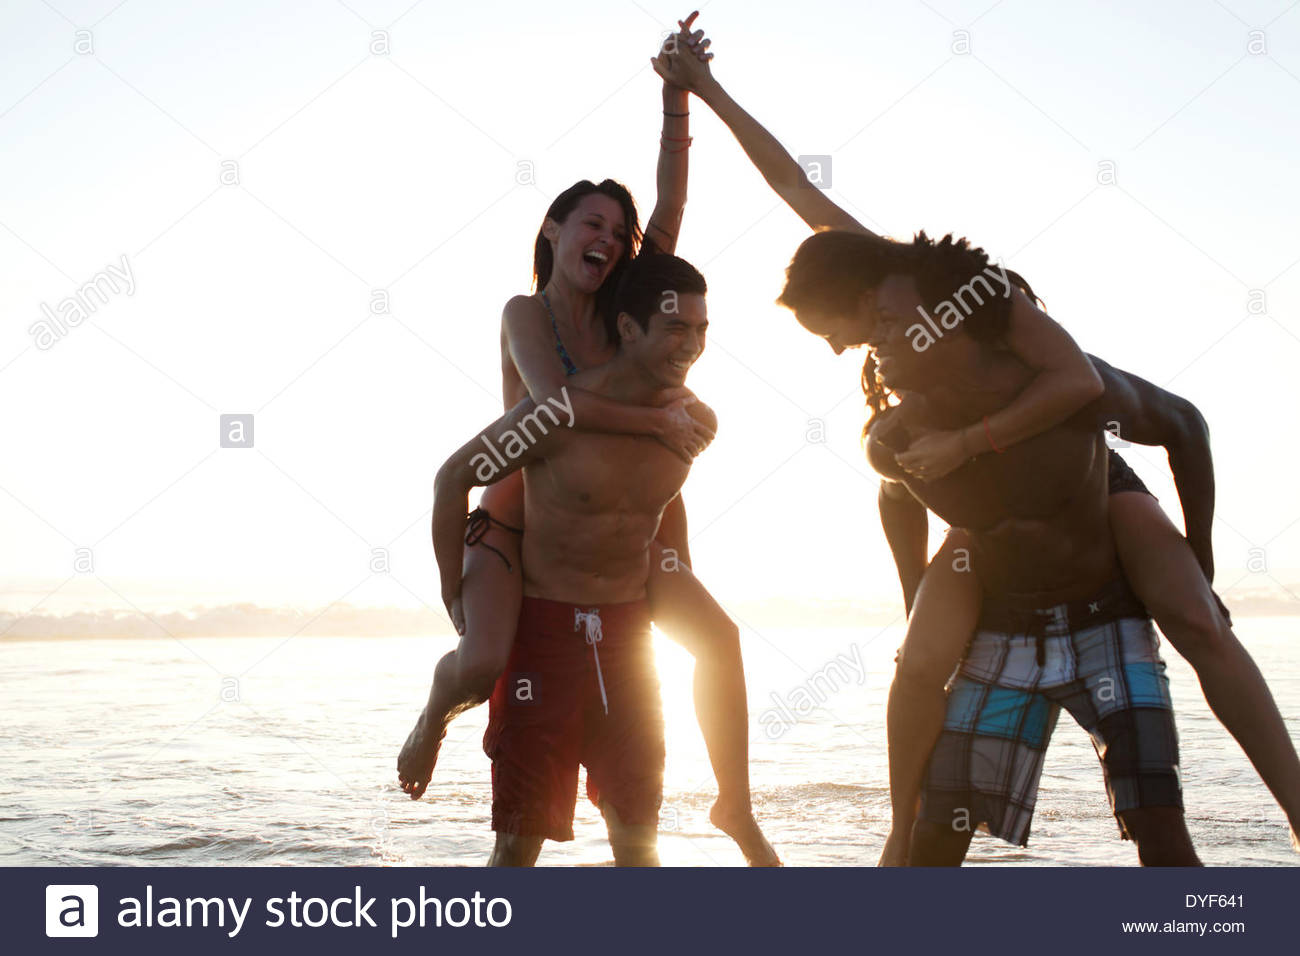 Couples playing in waves on beach - Stock Image